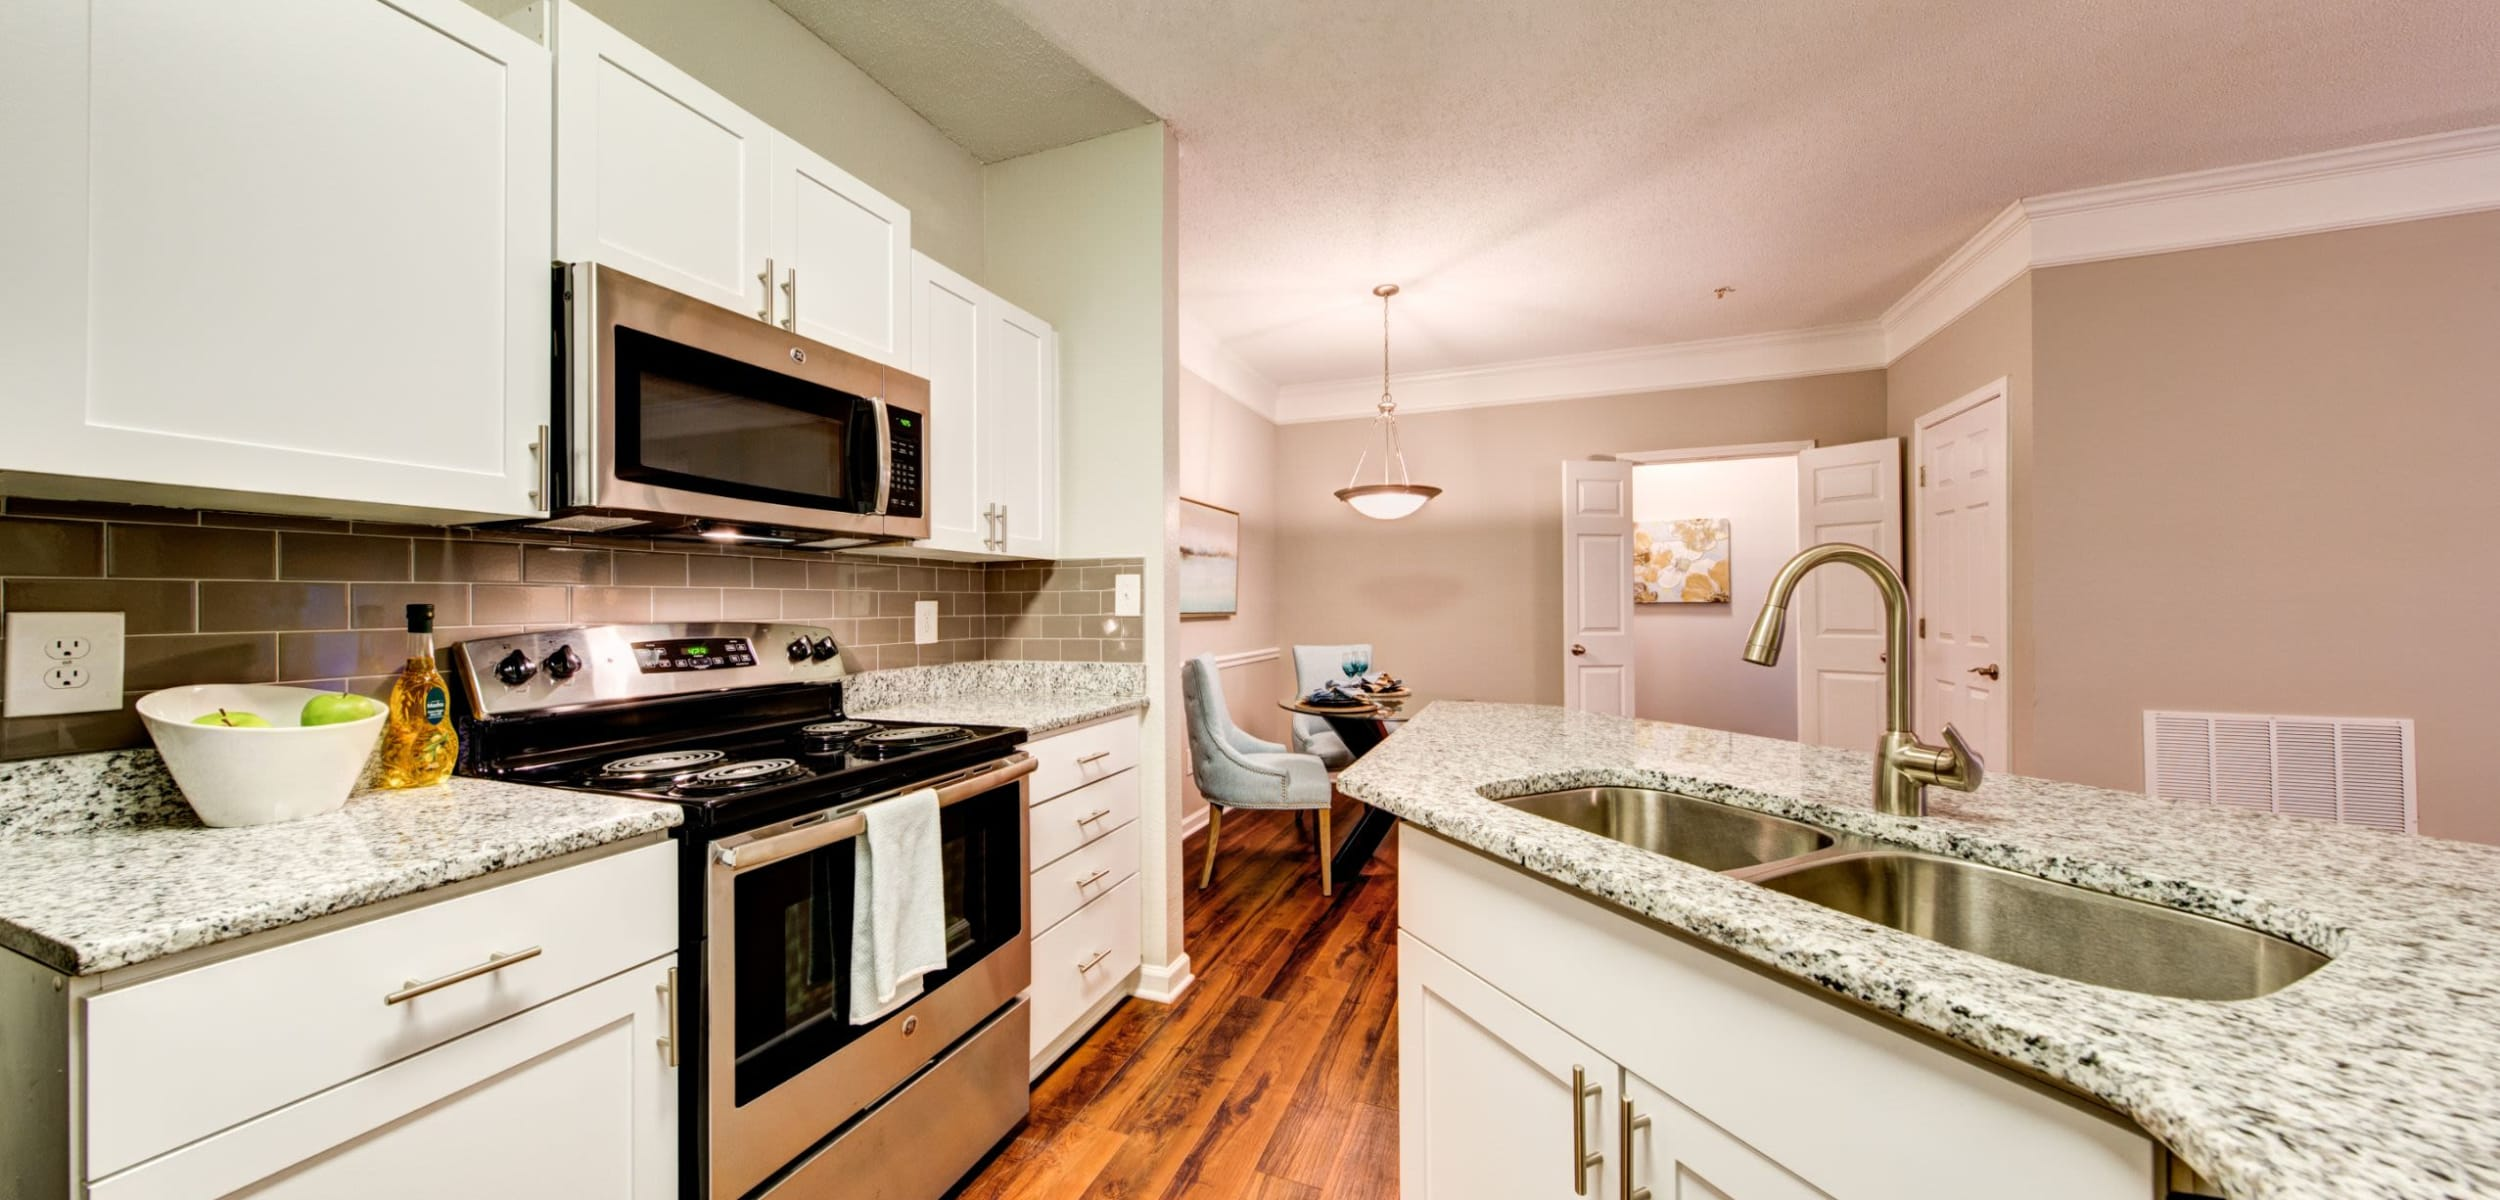 Modern kitchen with white cabinets and stainless steel appliances at Marquis on Edwards Mill in Raleigh, North Carolina